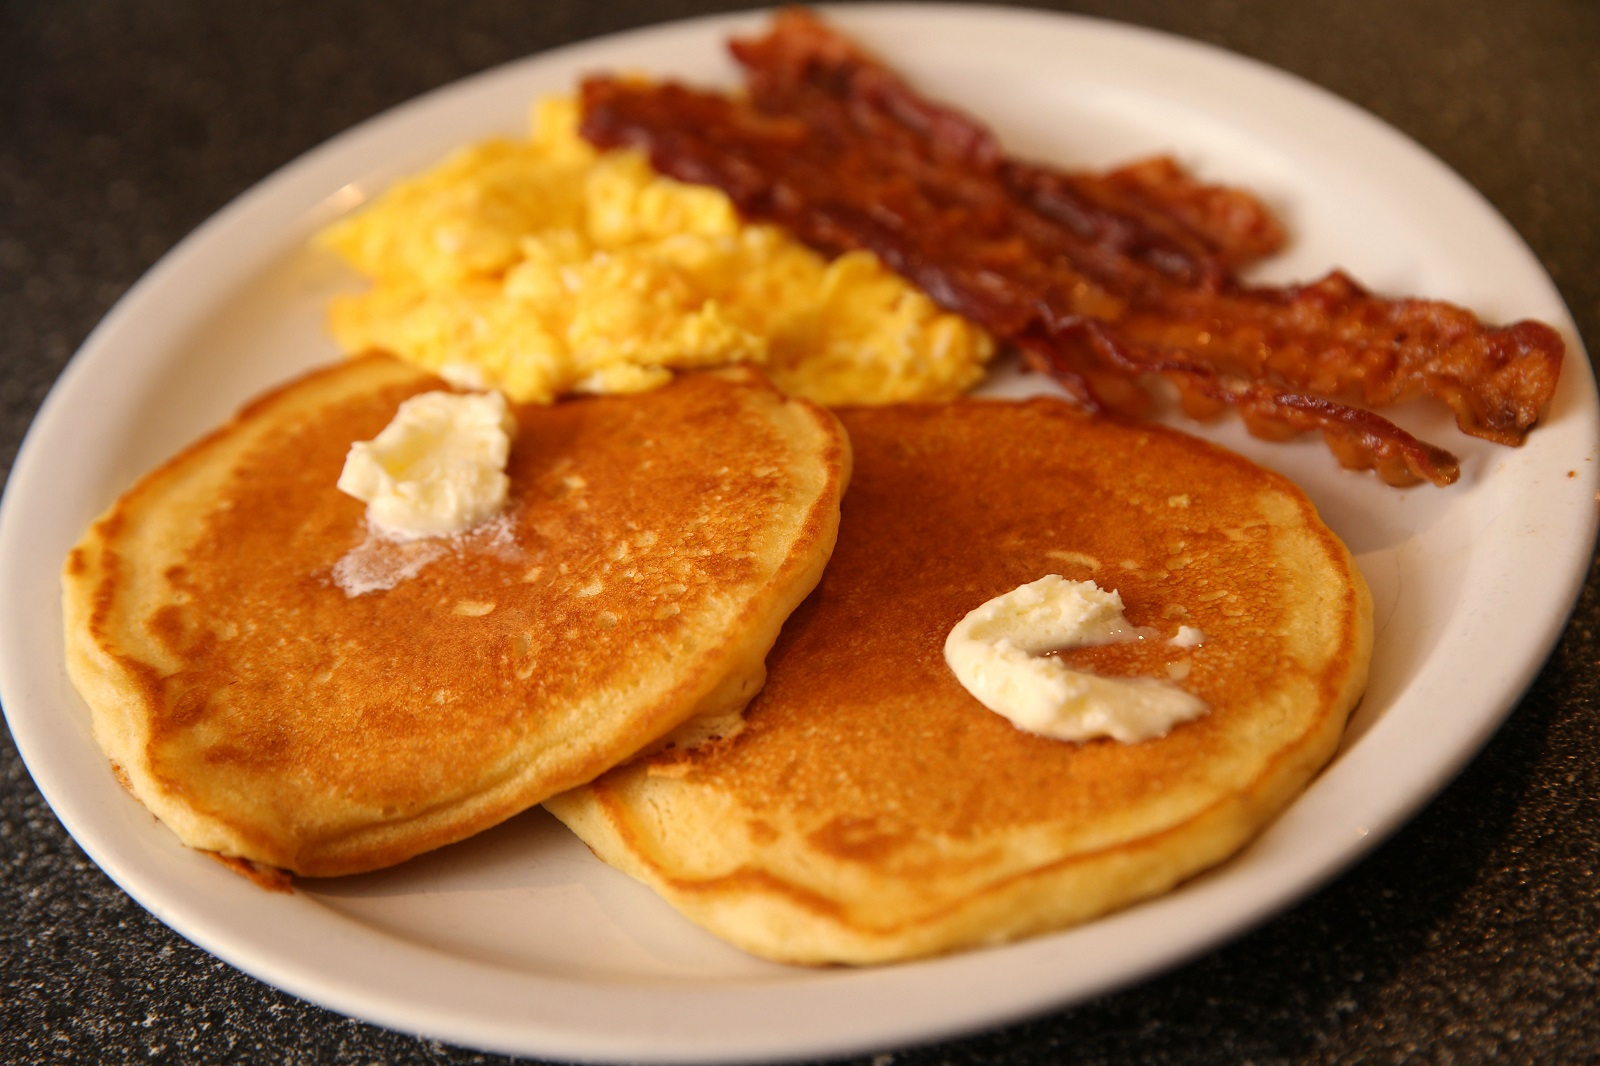 Breakfast, including this triple special, is available all day at Taki's Restaurant. (Sharon Cantillon/Buffalo News)